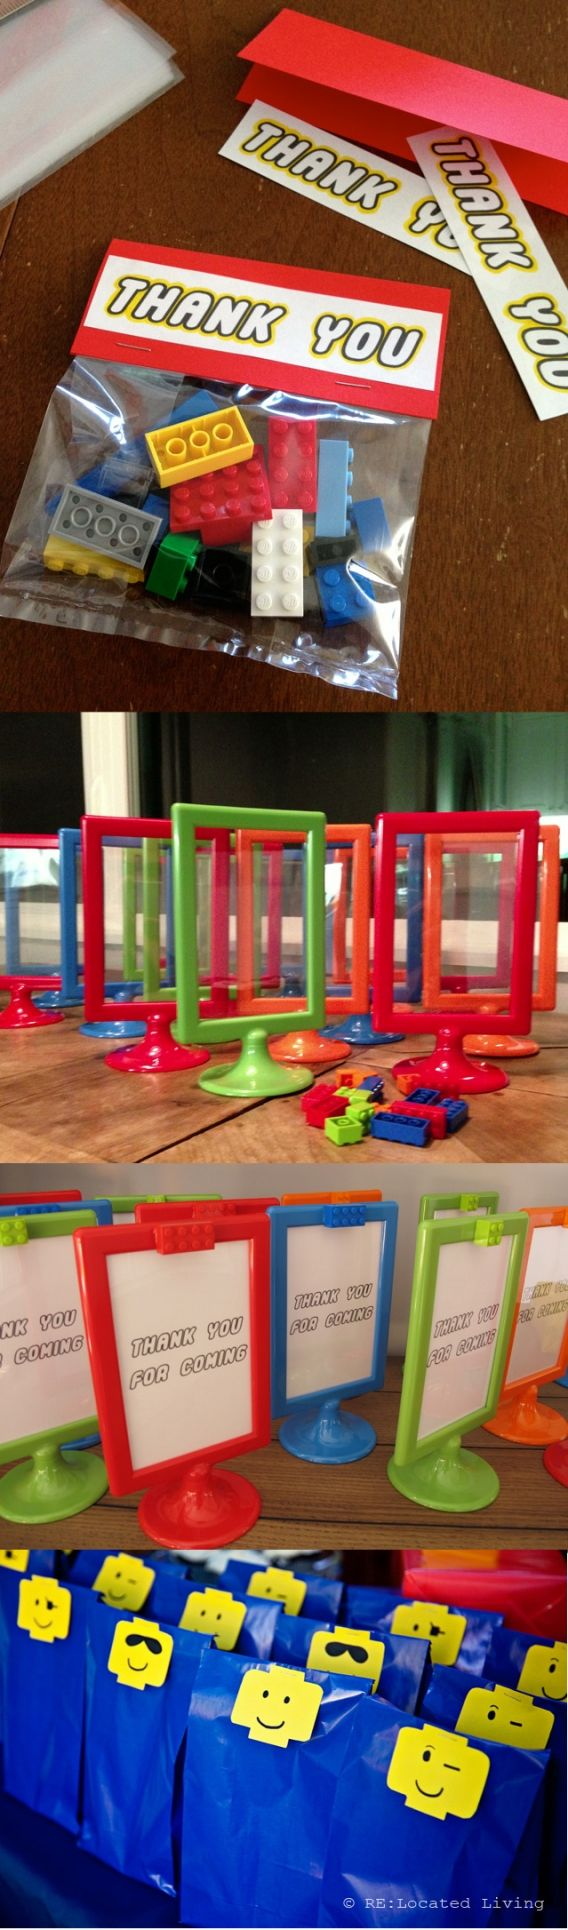 Celebrate: Big Boy's Lego Party » Relocated Living